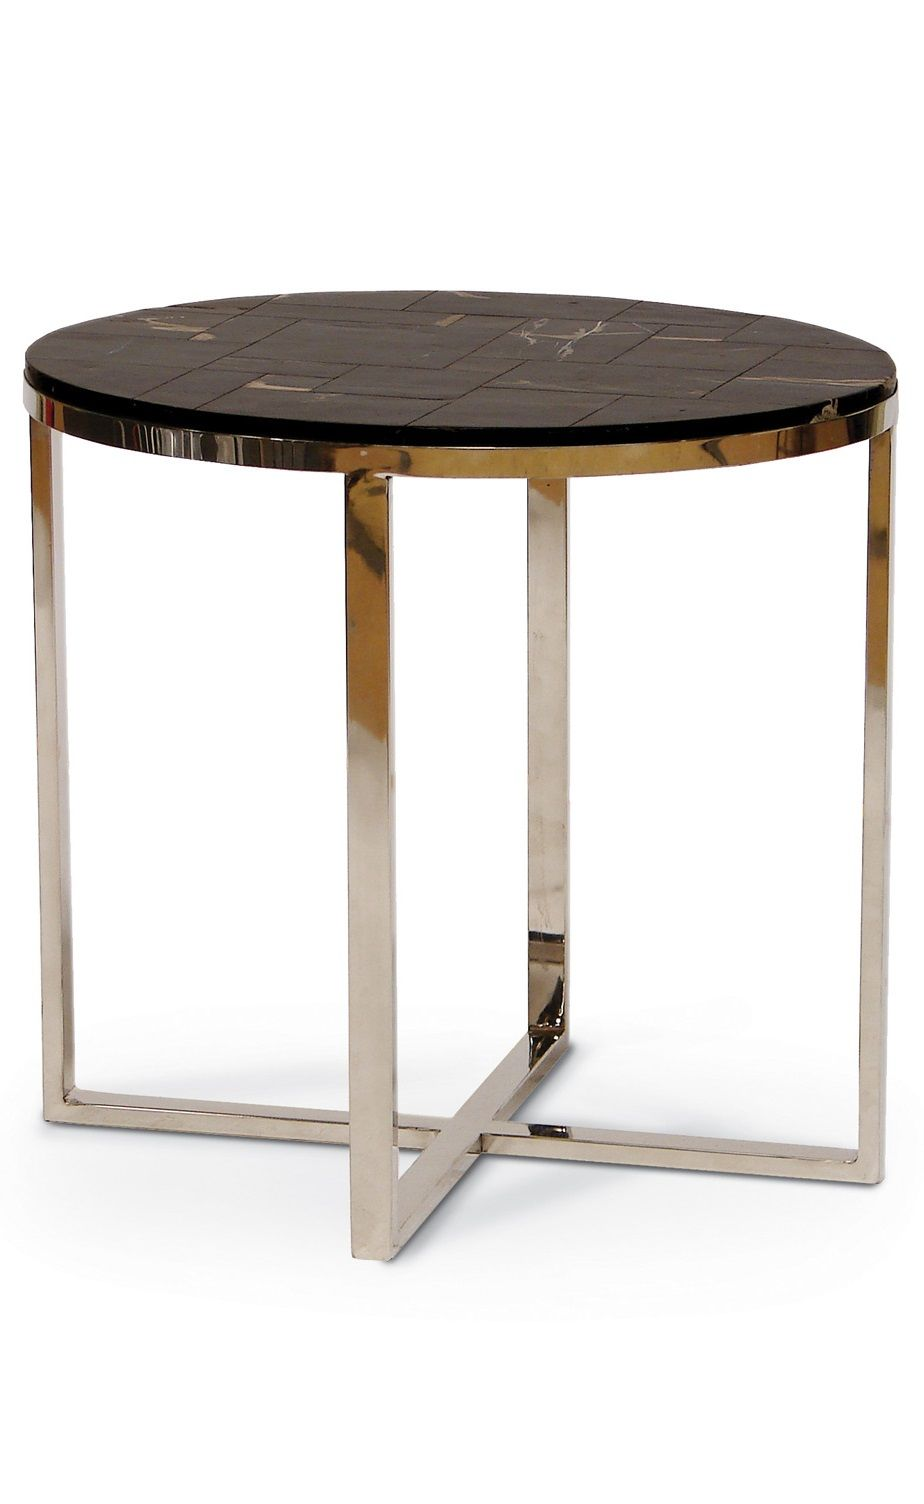 Instyle beverly hills side tables end tables Beautiful end tables